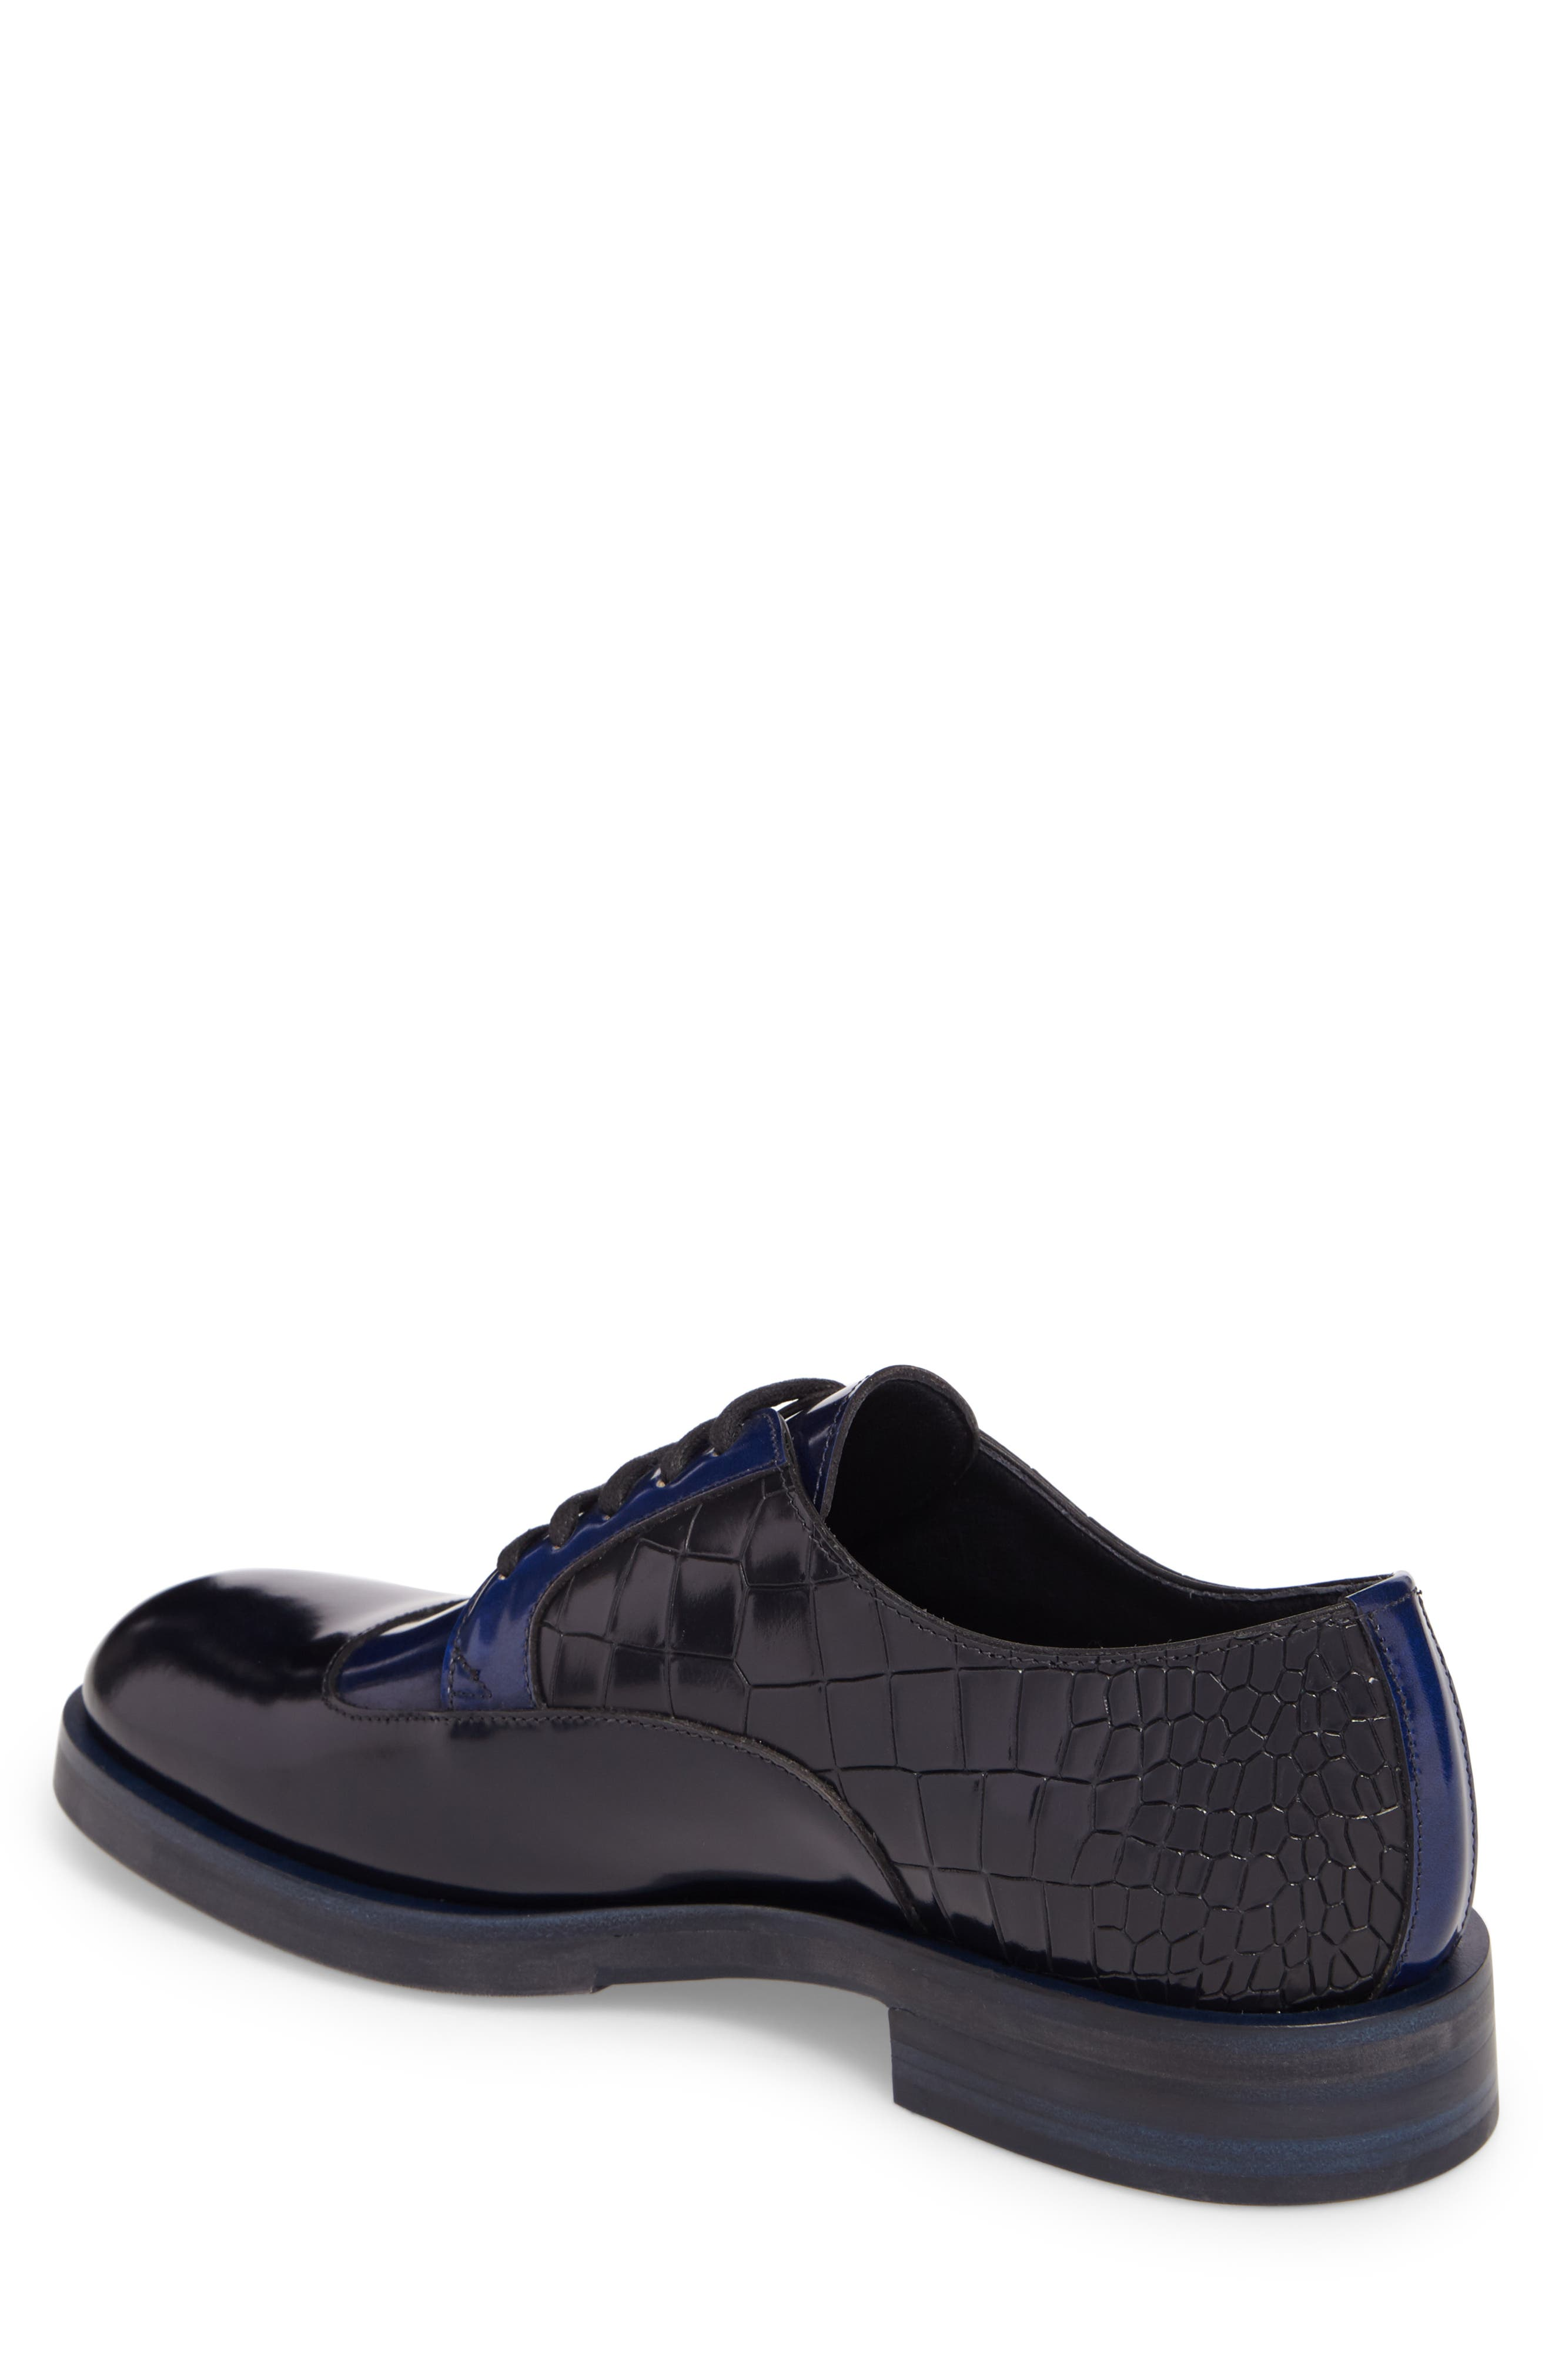 Bolan Croc Embossed Oxford,                             Alternate thumbnail 2, color,                             410